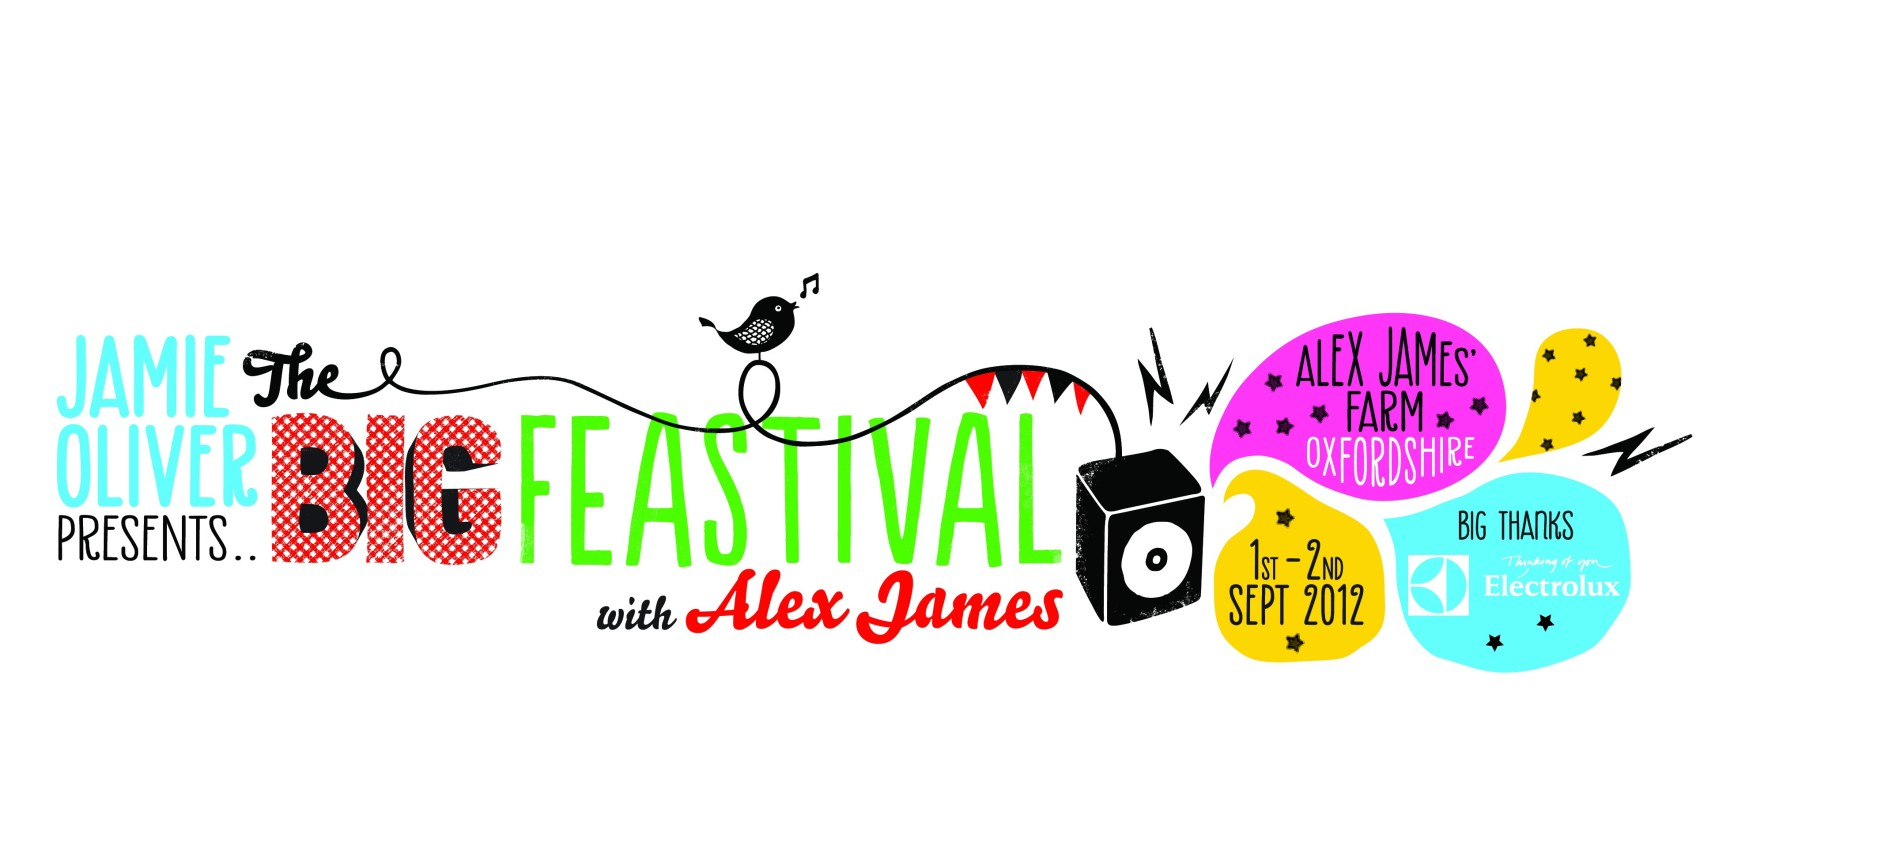 Mystery Food Twitter Competition: Be part of Slow Food Kids at Jamie Oliver's Big Feastival